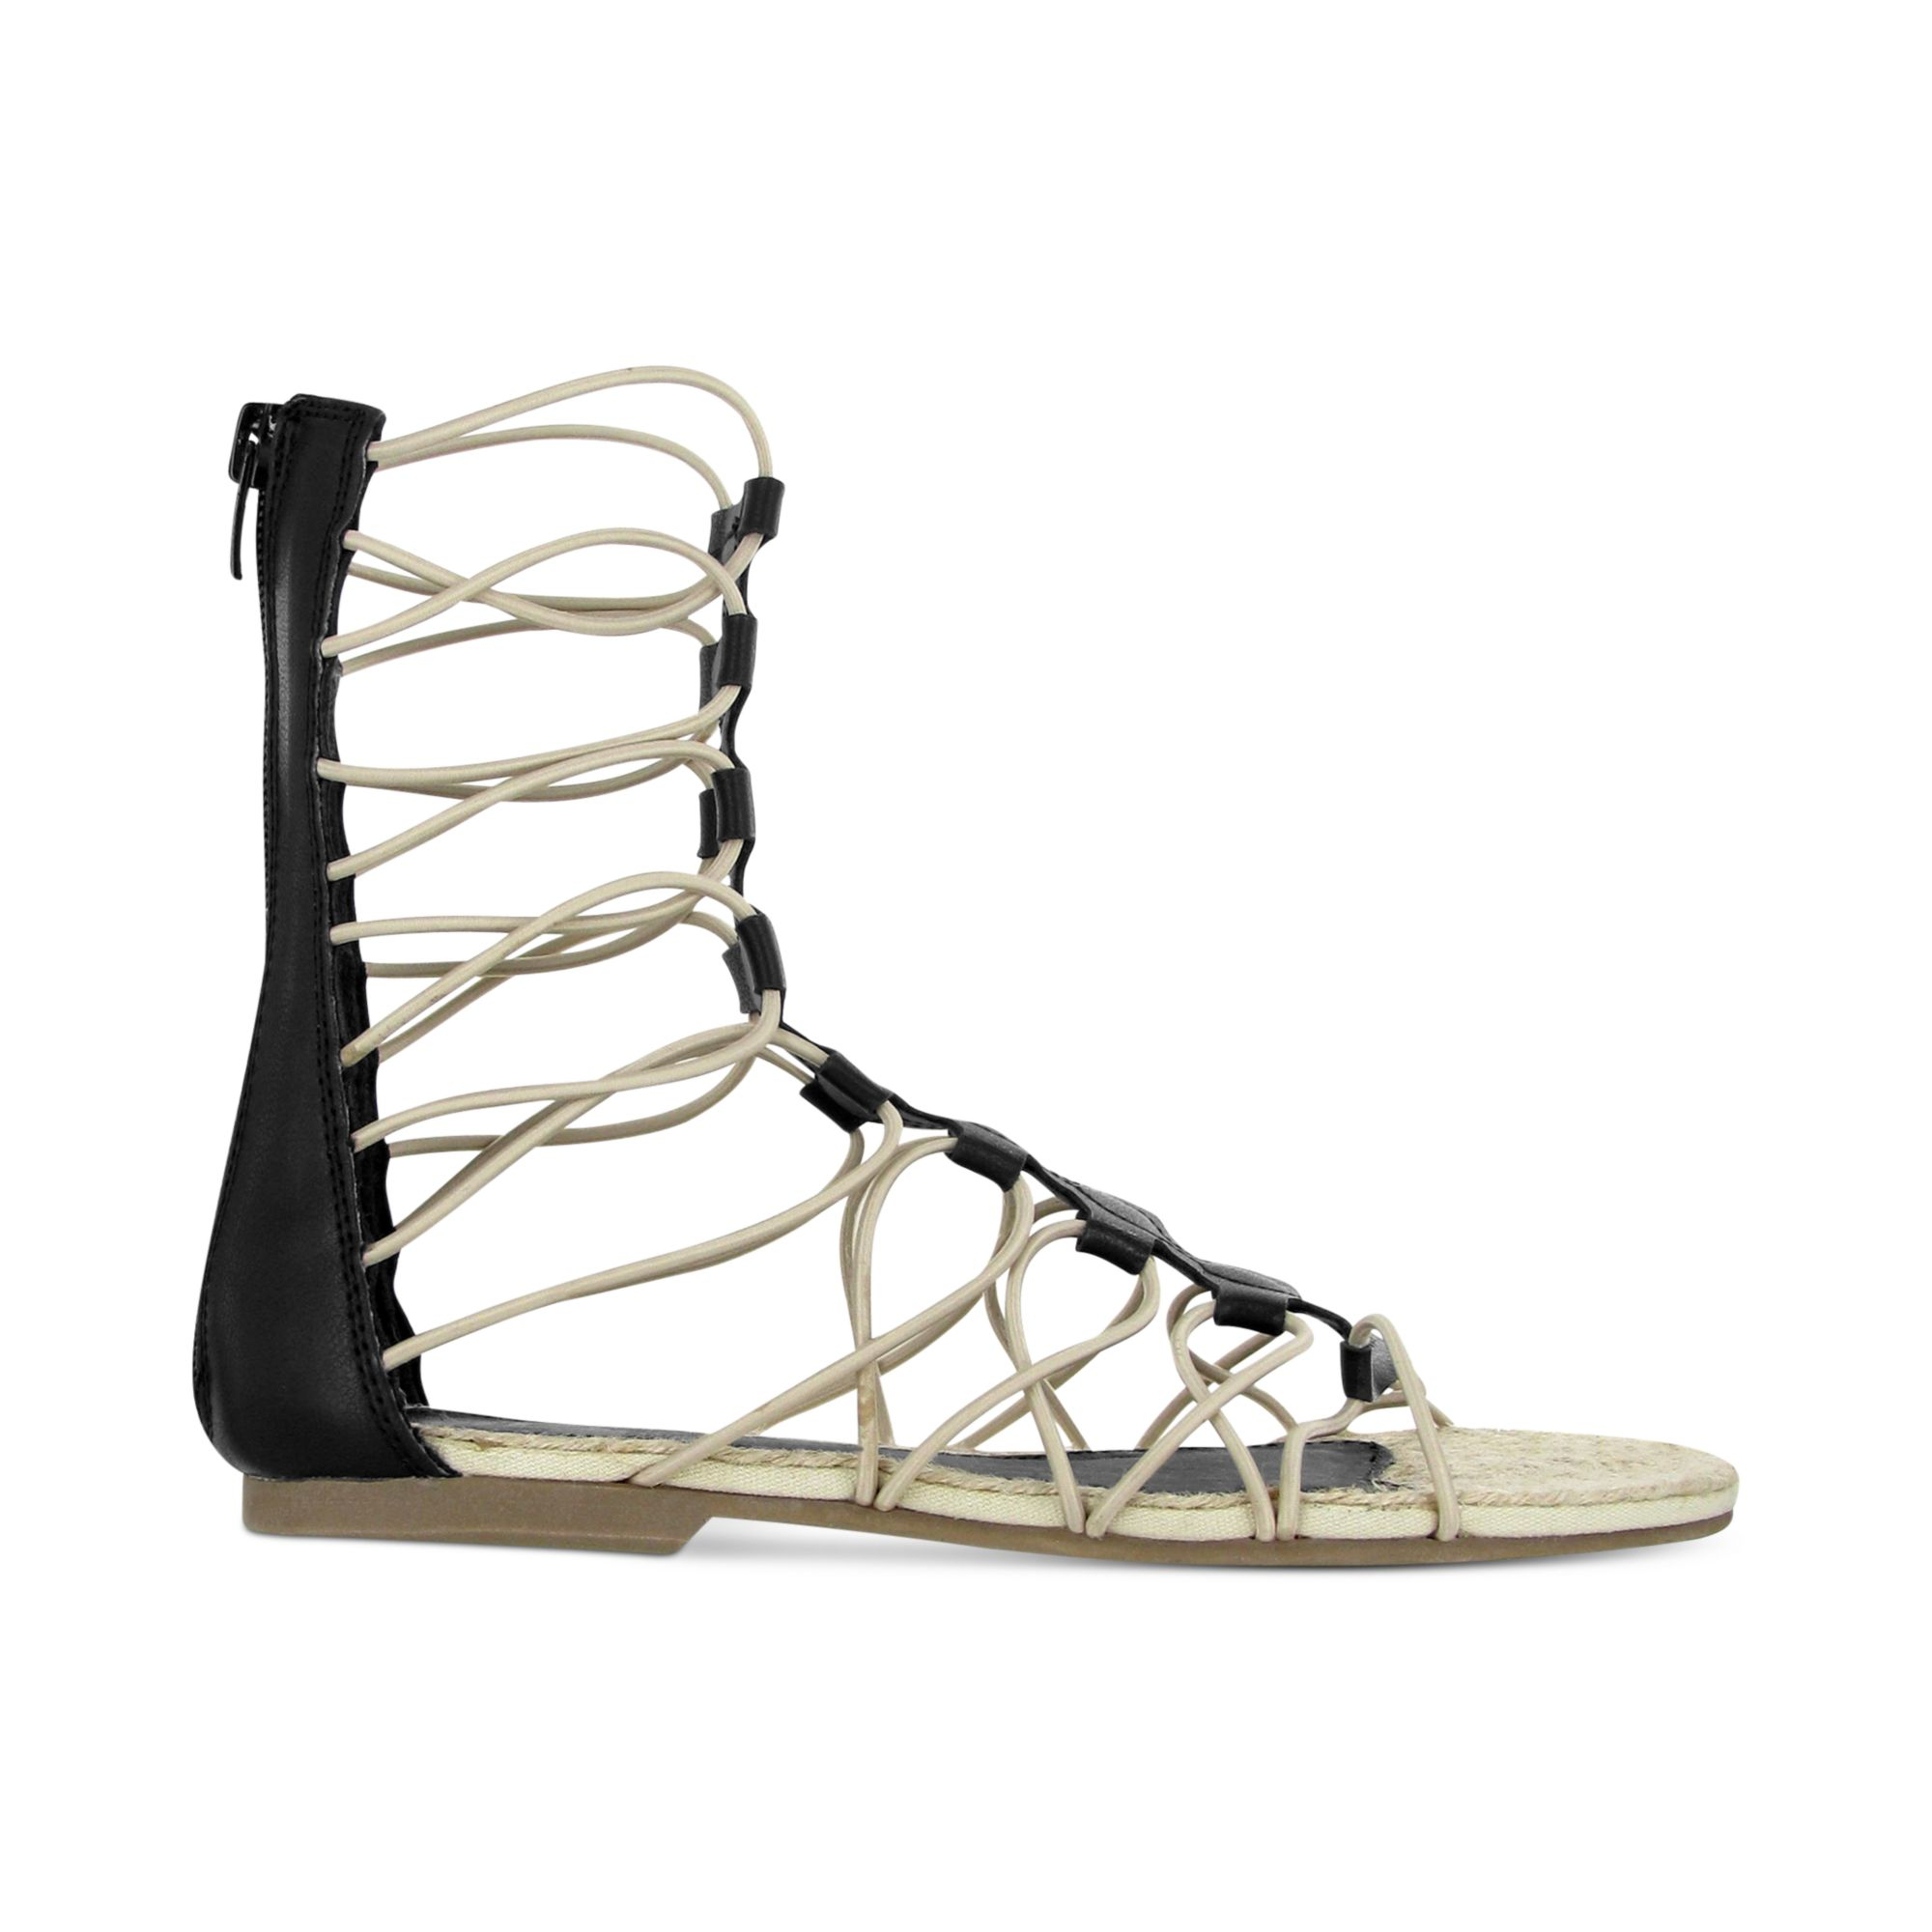 d45470d05e6 Gallery. Previously sold at  Macy s · Women s Gladiator Sandals ...